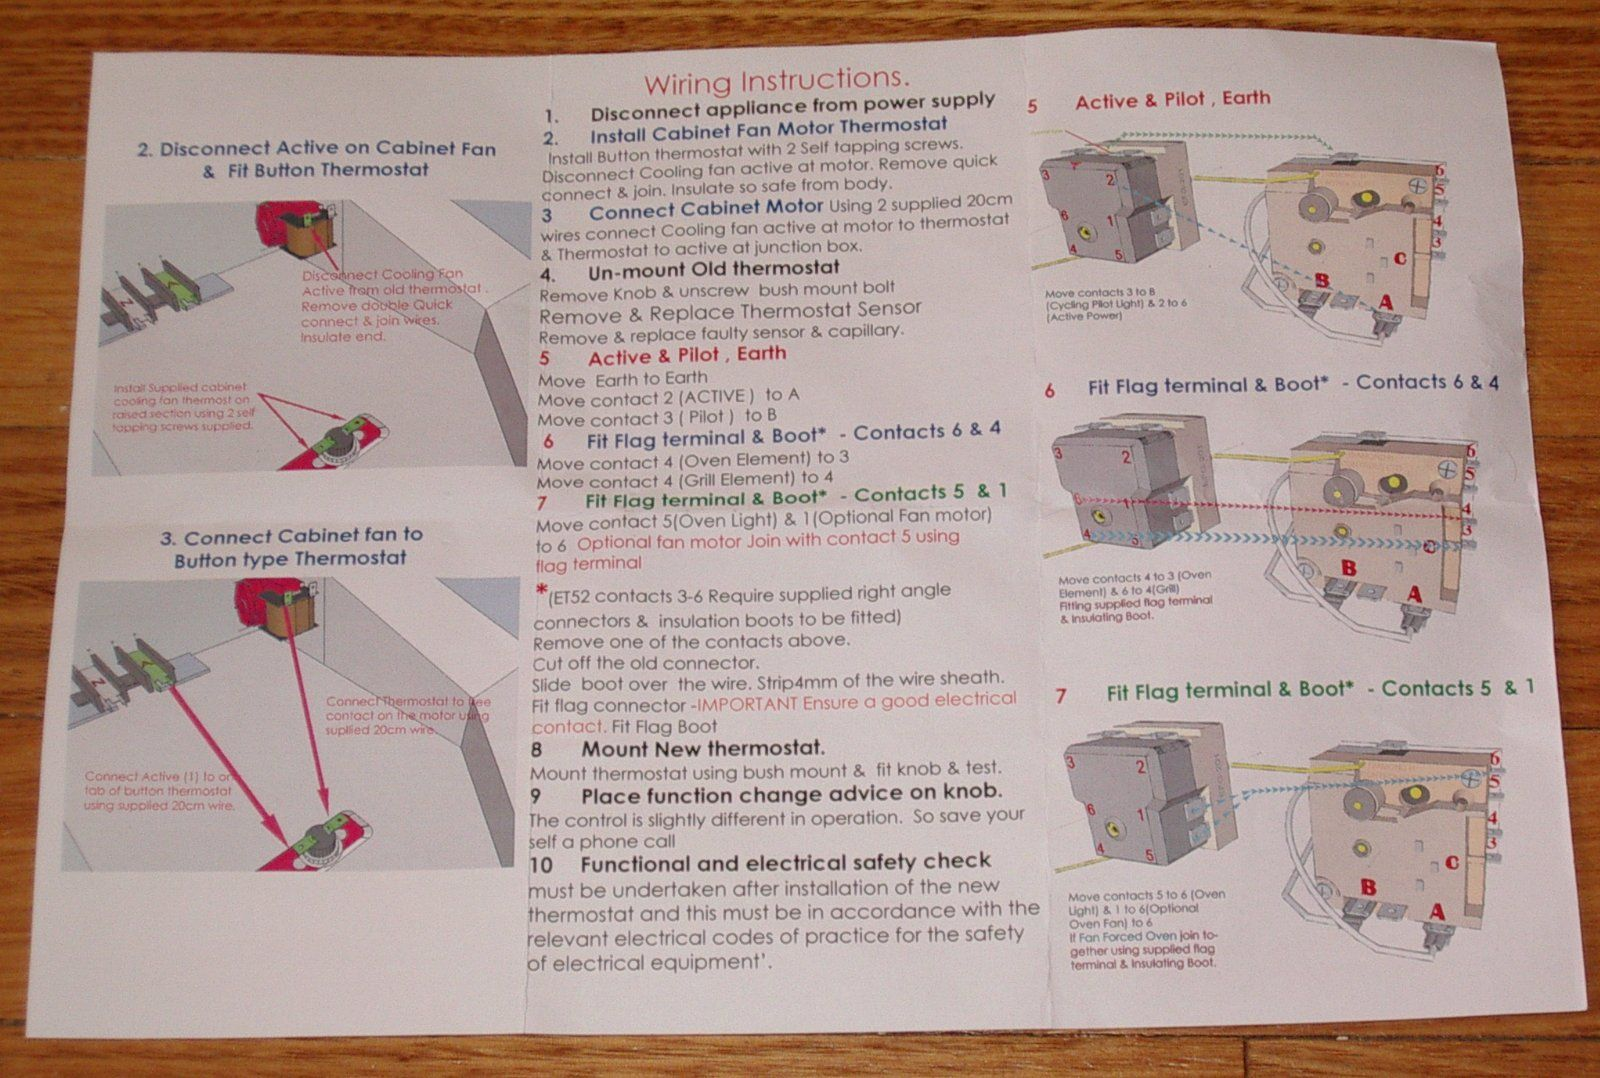 Tracing A Stove Or Oven Wiring Diagram Tracing A Stove Or Oven Wiring